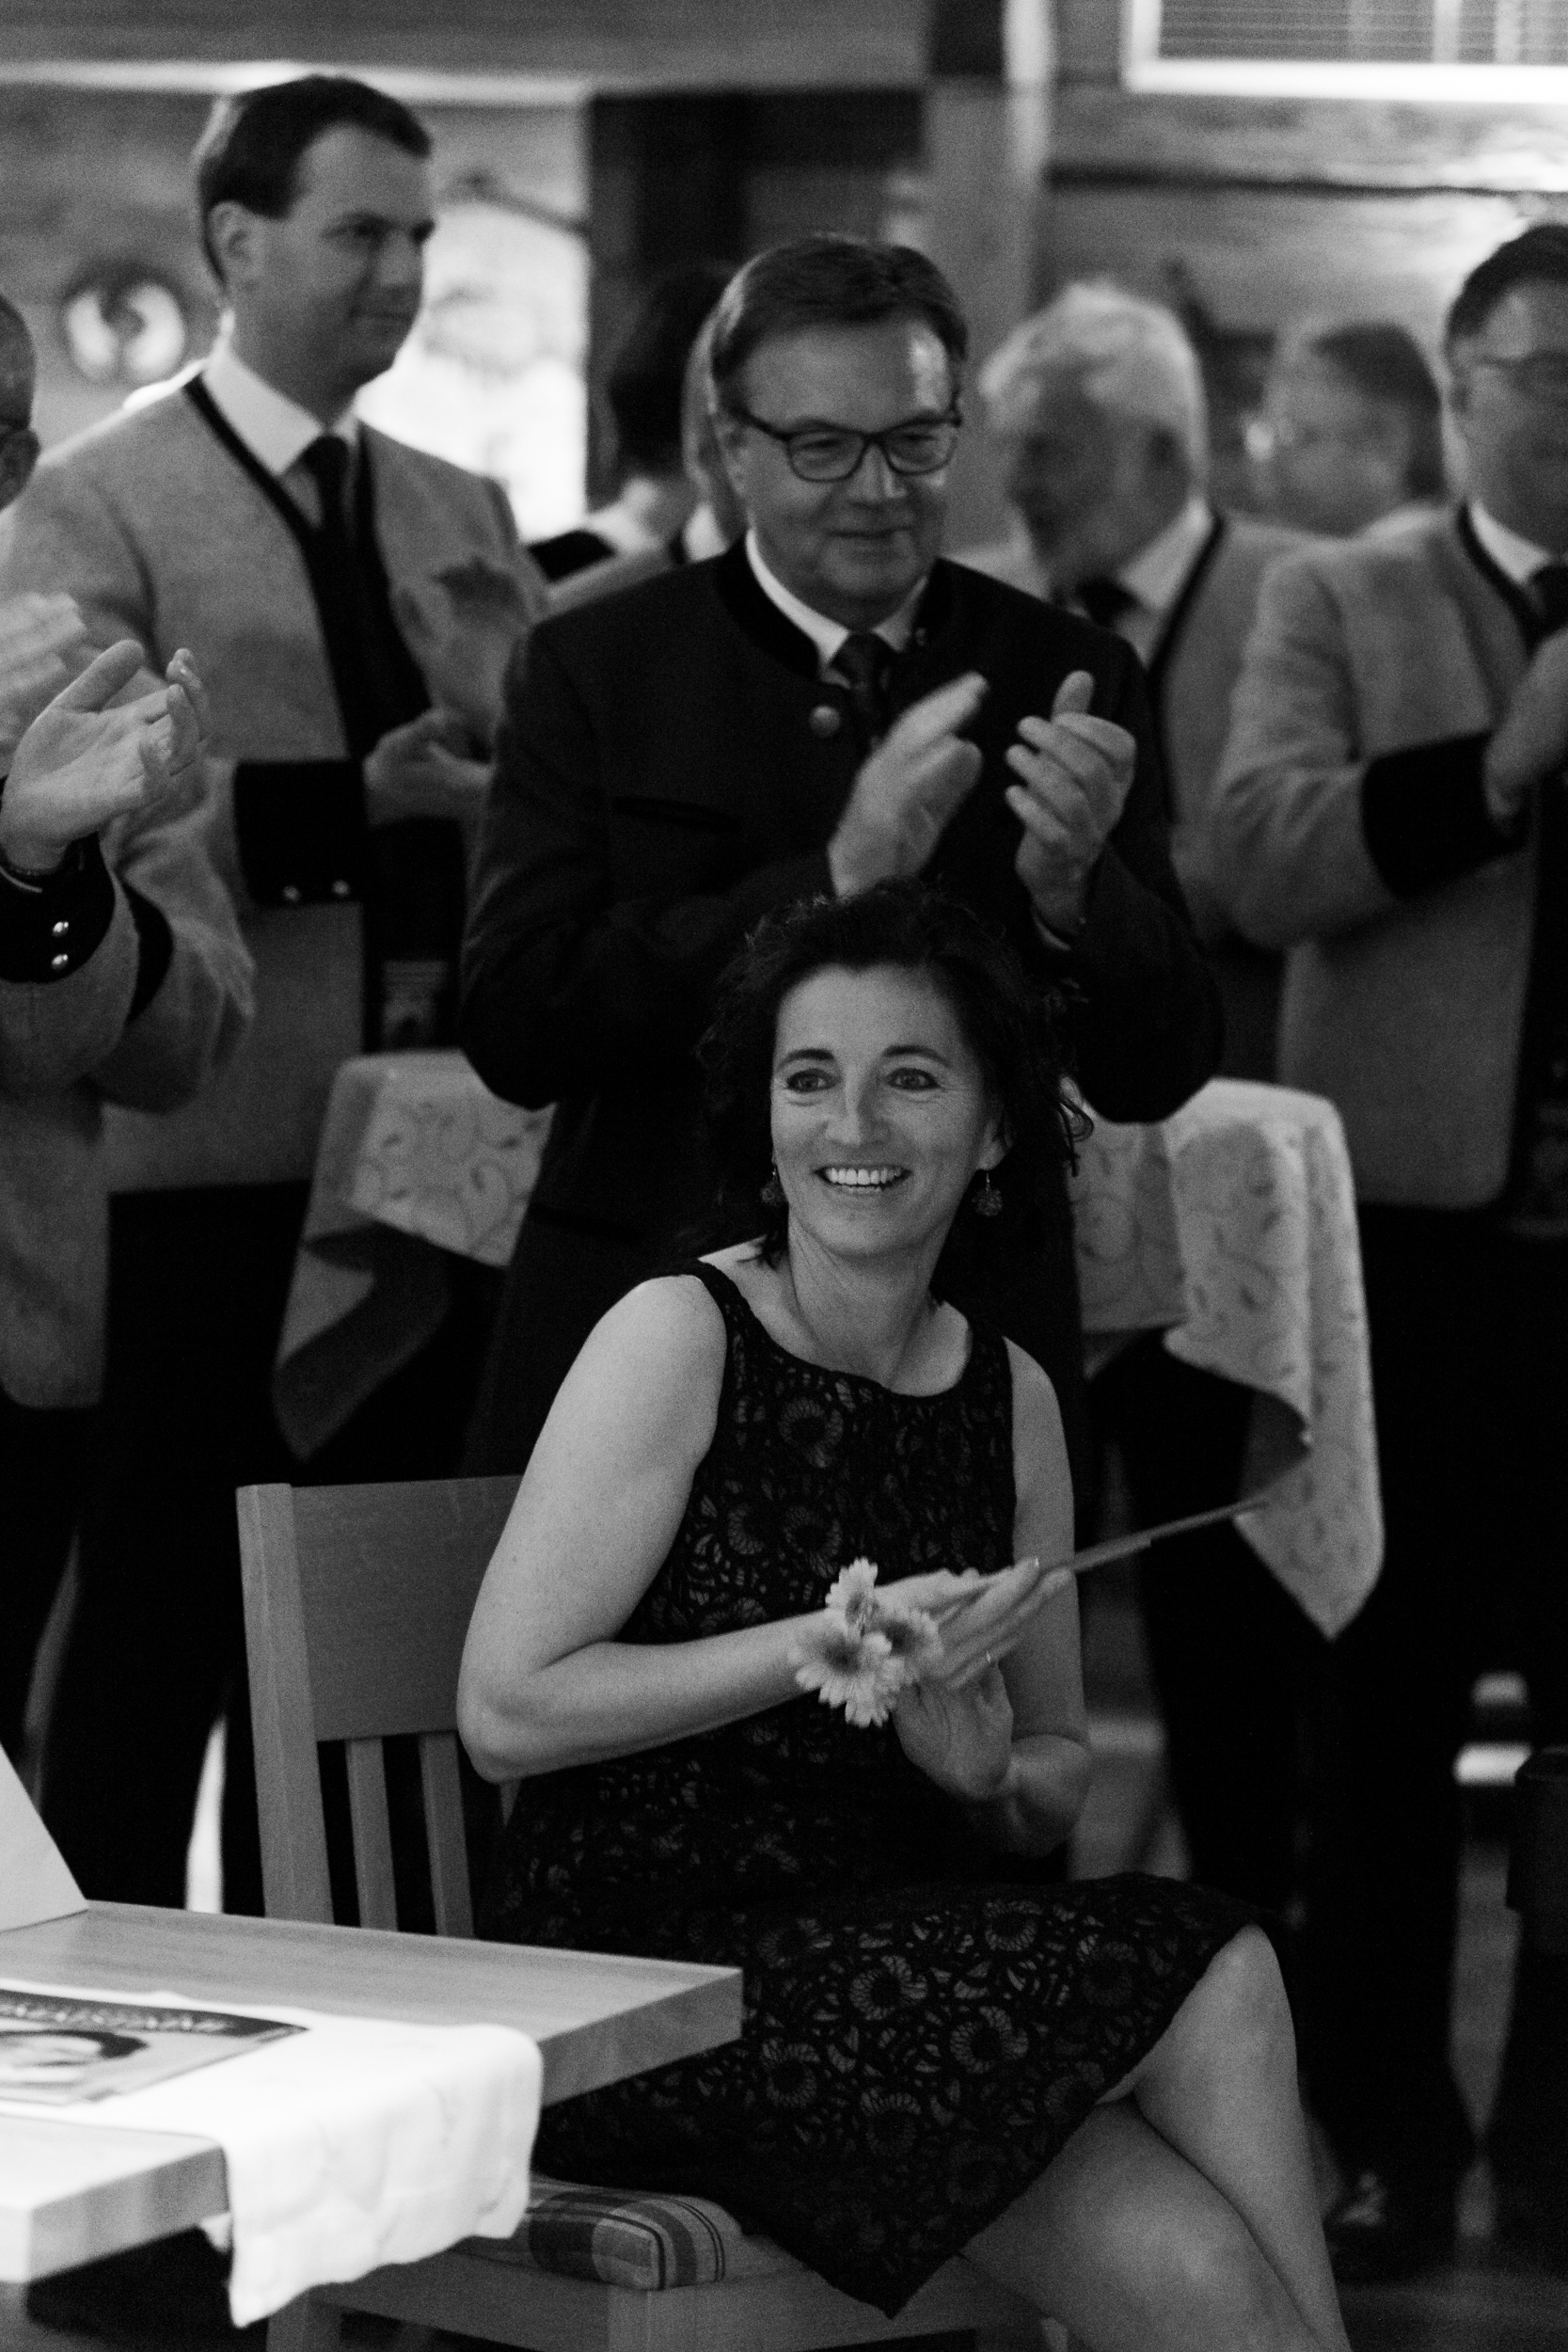 Our Mayor (Bürgermeisterin), Monica Wechselberger, looking fabulous on her birthday (not going to say which one as its impolite to say a ladies age!) with the Govenor of Tirol, Günther Platter.